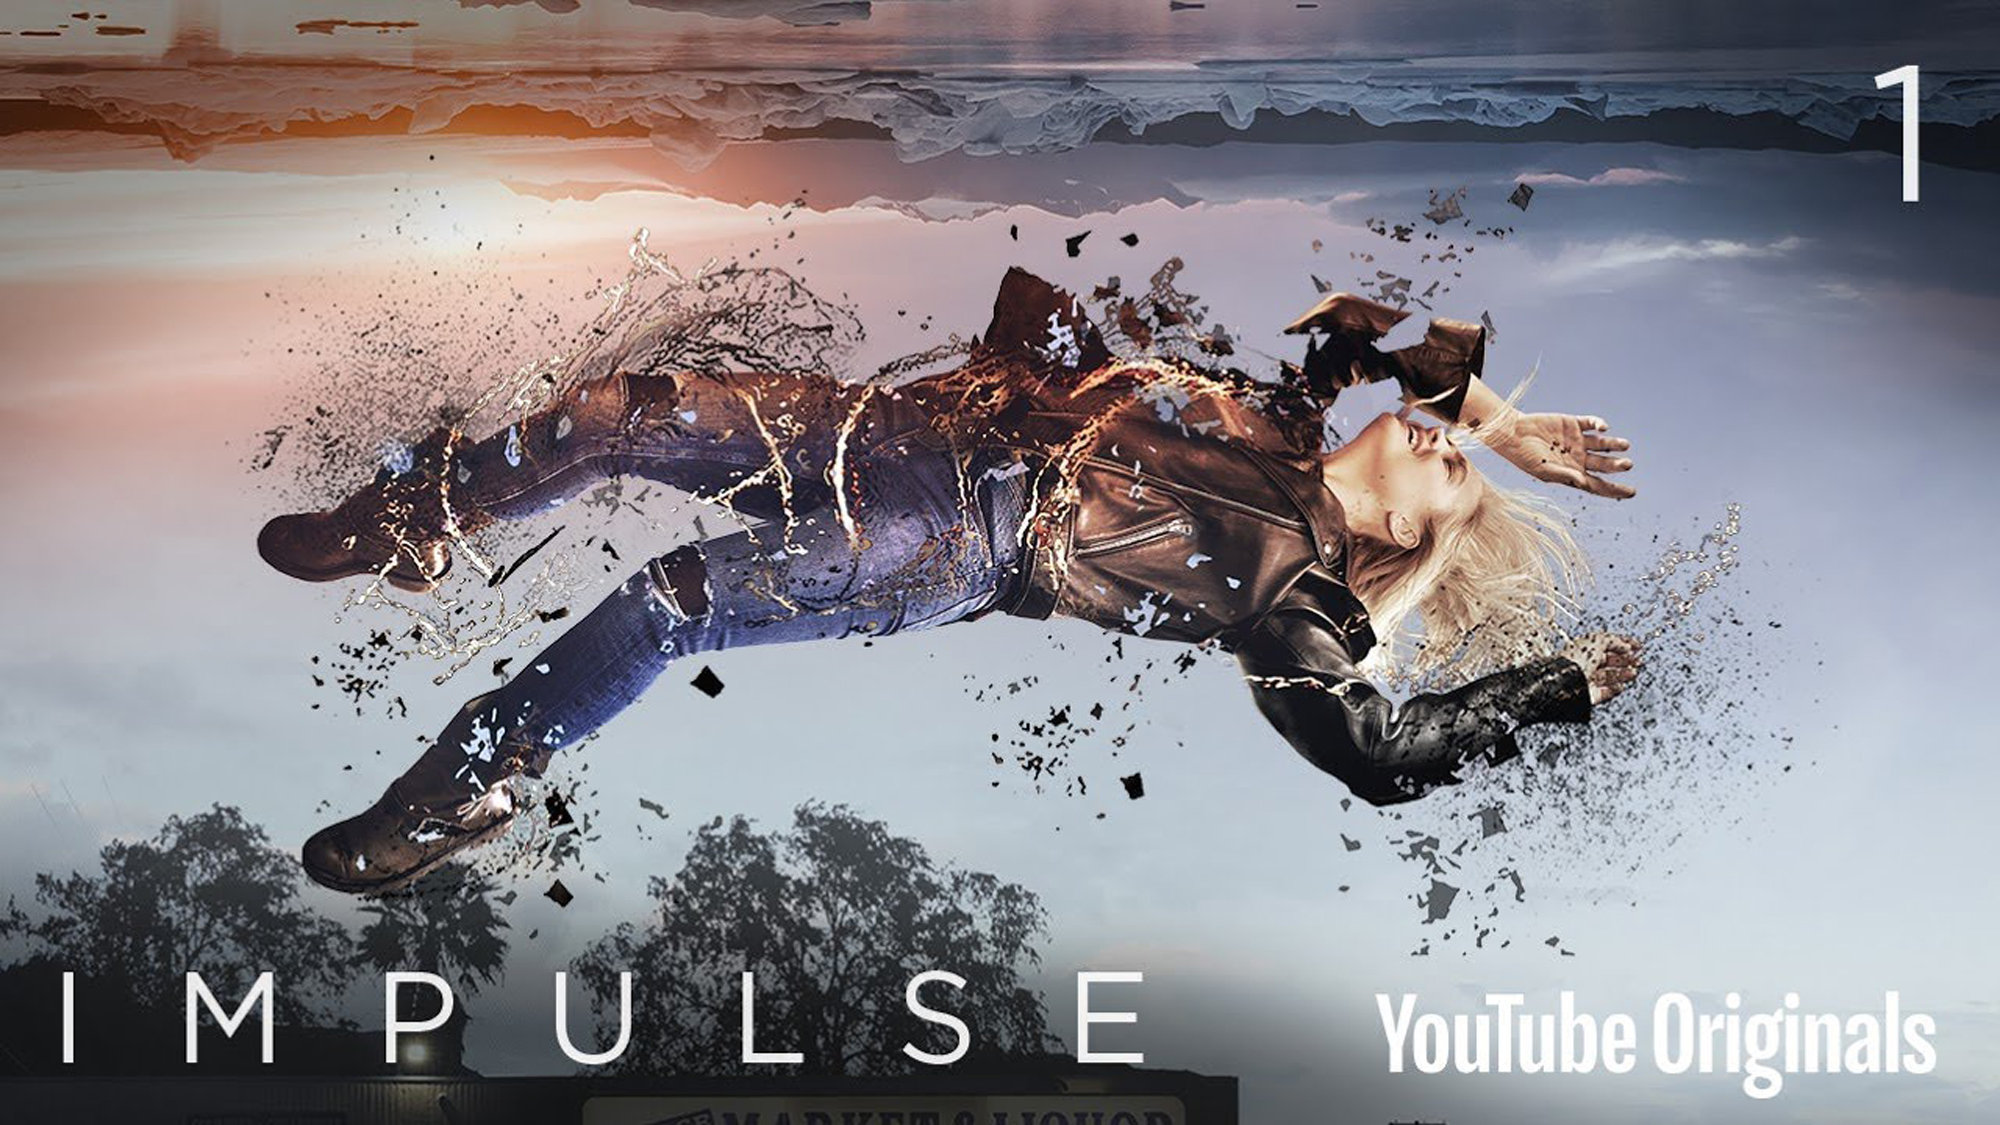 Impulse: Is YouTubes Original Series Worth Your Time